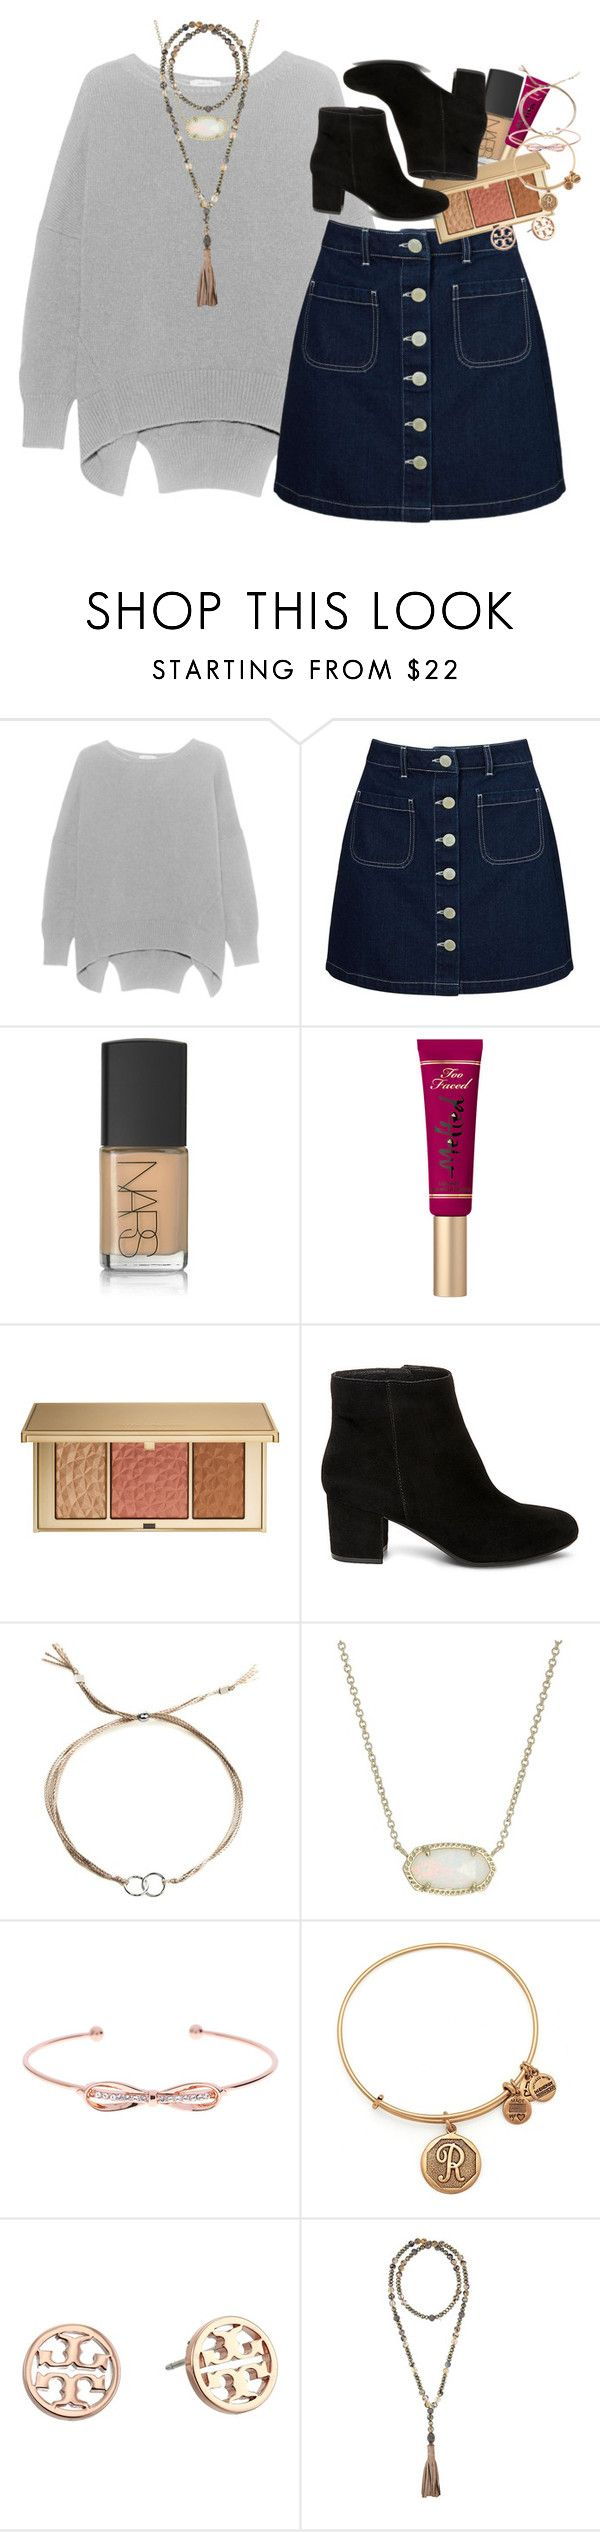 """is it bad that I have polariods all over my room?¿"" by ellaswiftie13 on Polyvore featuring Miss Selfridge, NARS Cosmetics, Estée Lauder, Steve Madden, Dogeared, Kendra Scott, Ted Baker, Alex and Ani, Tory Burch and Hipchik"